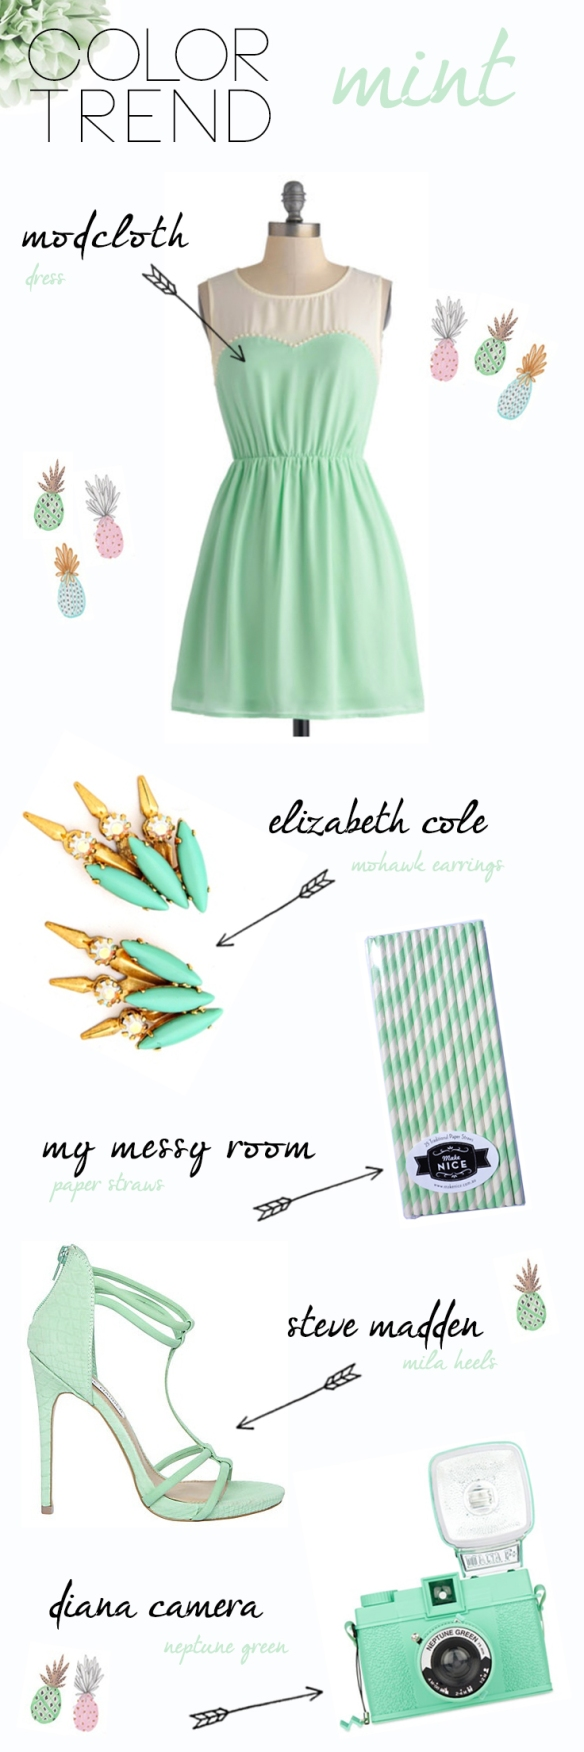 Color Trend - Mint